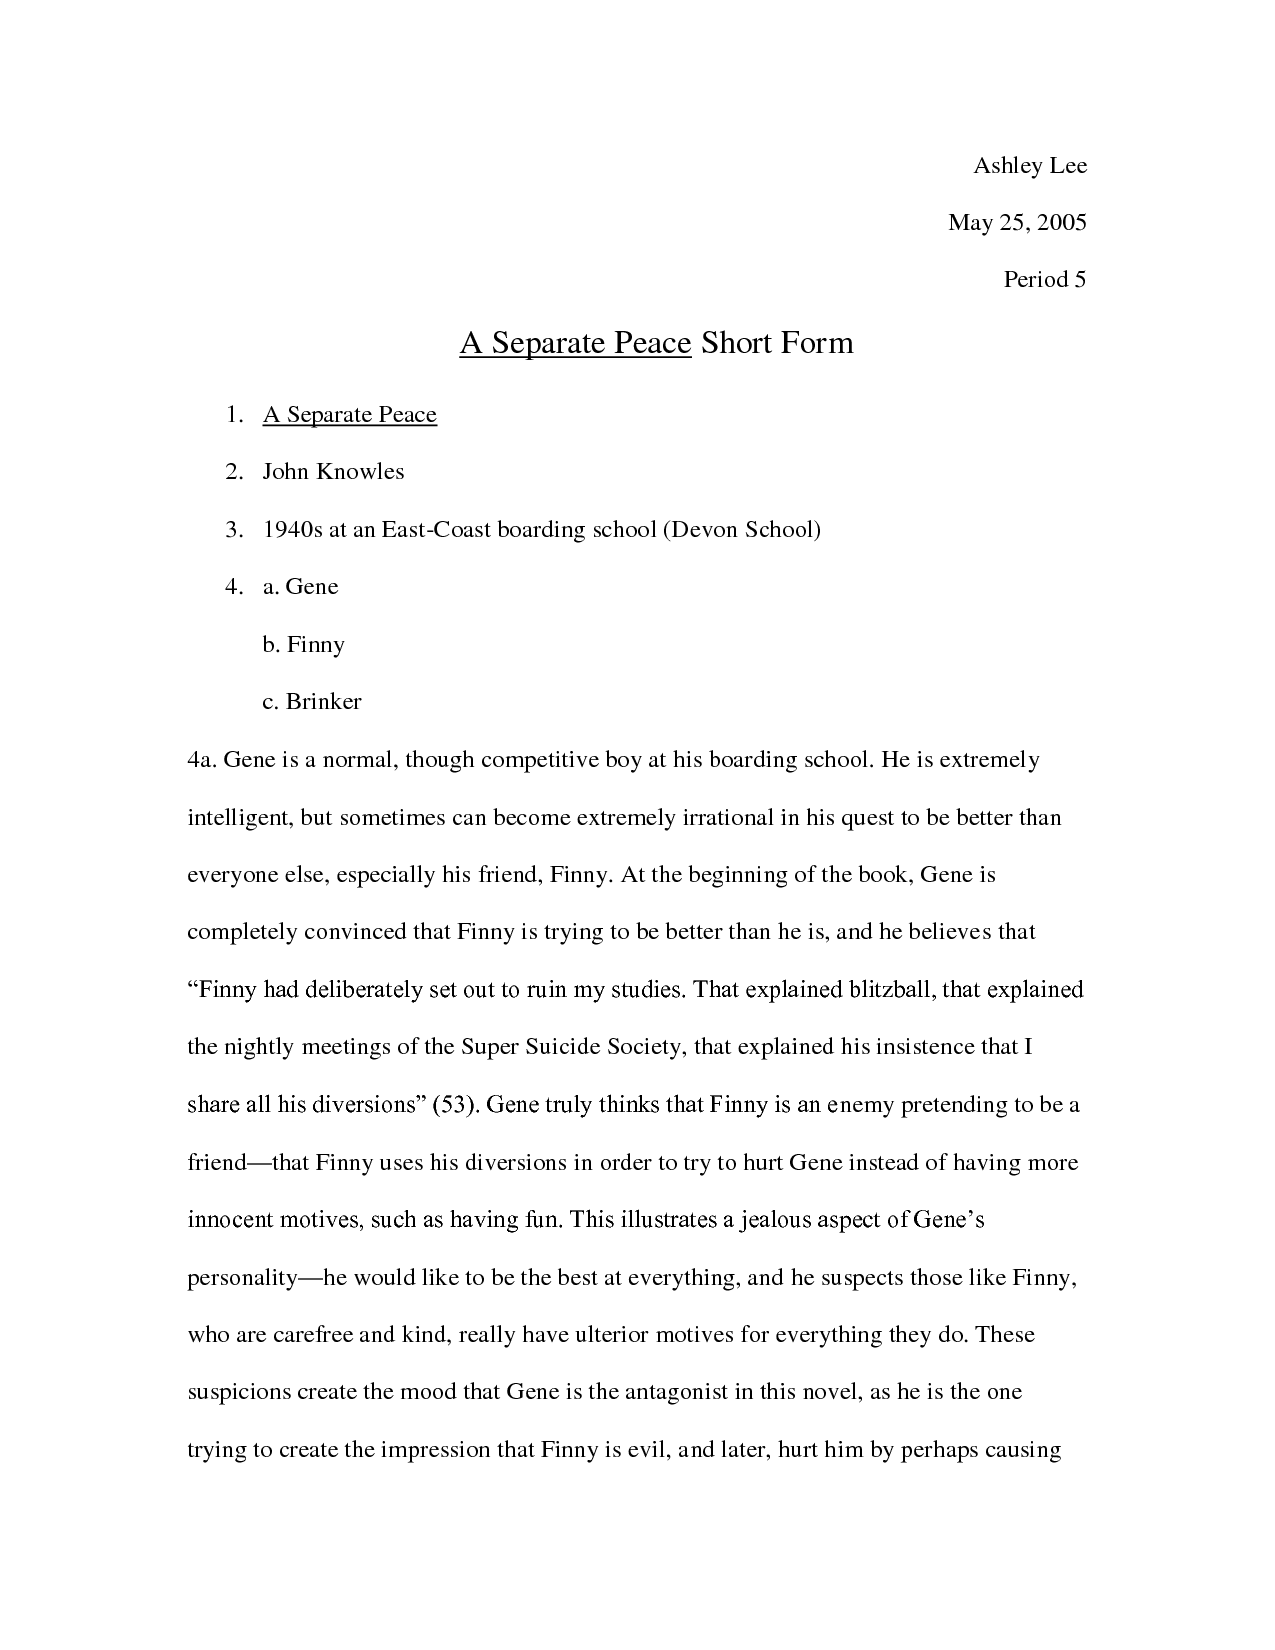 friendship in a separate peace essay A separate peace is a classic novel which takes place during world war ii, published in 1959 by john knowles this lesson provides an overview and.